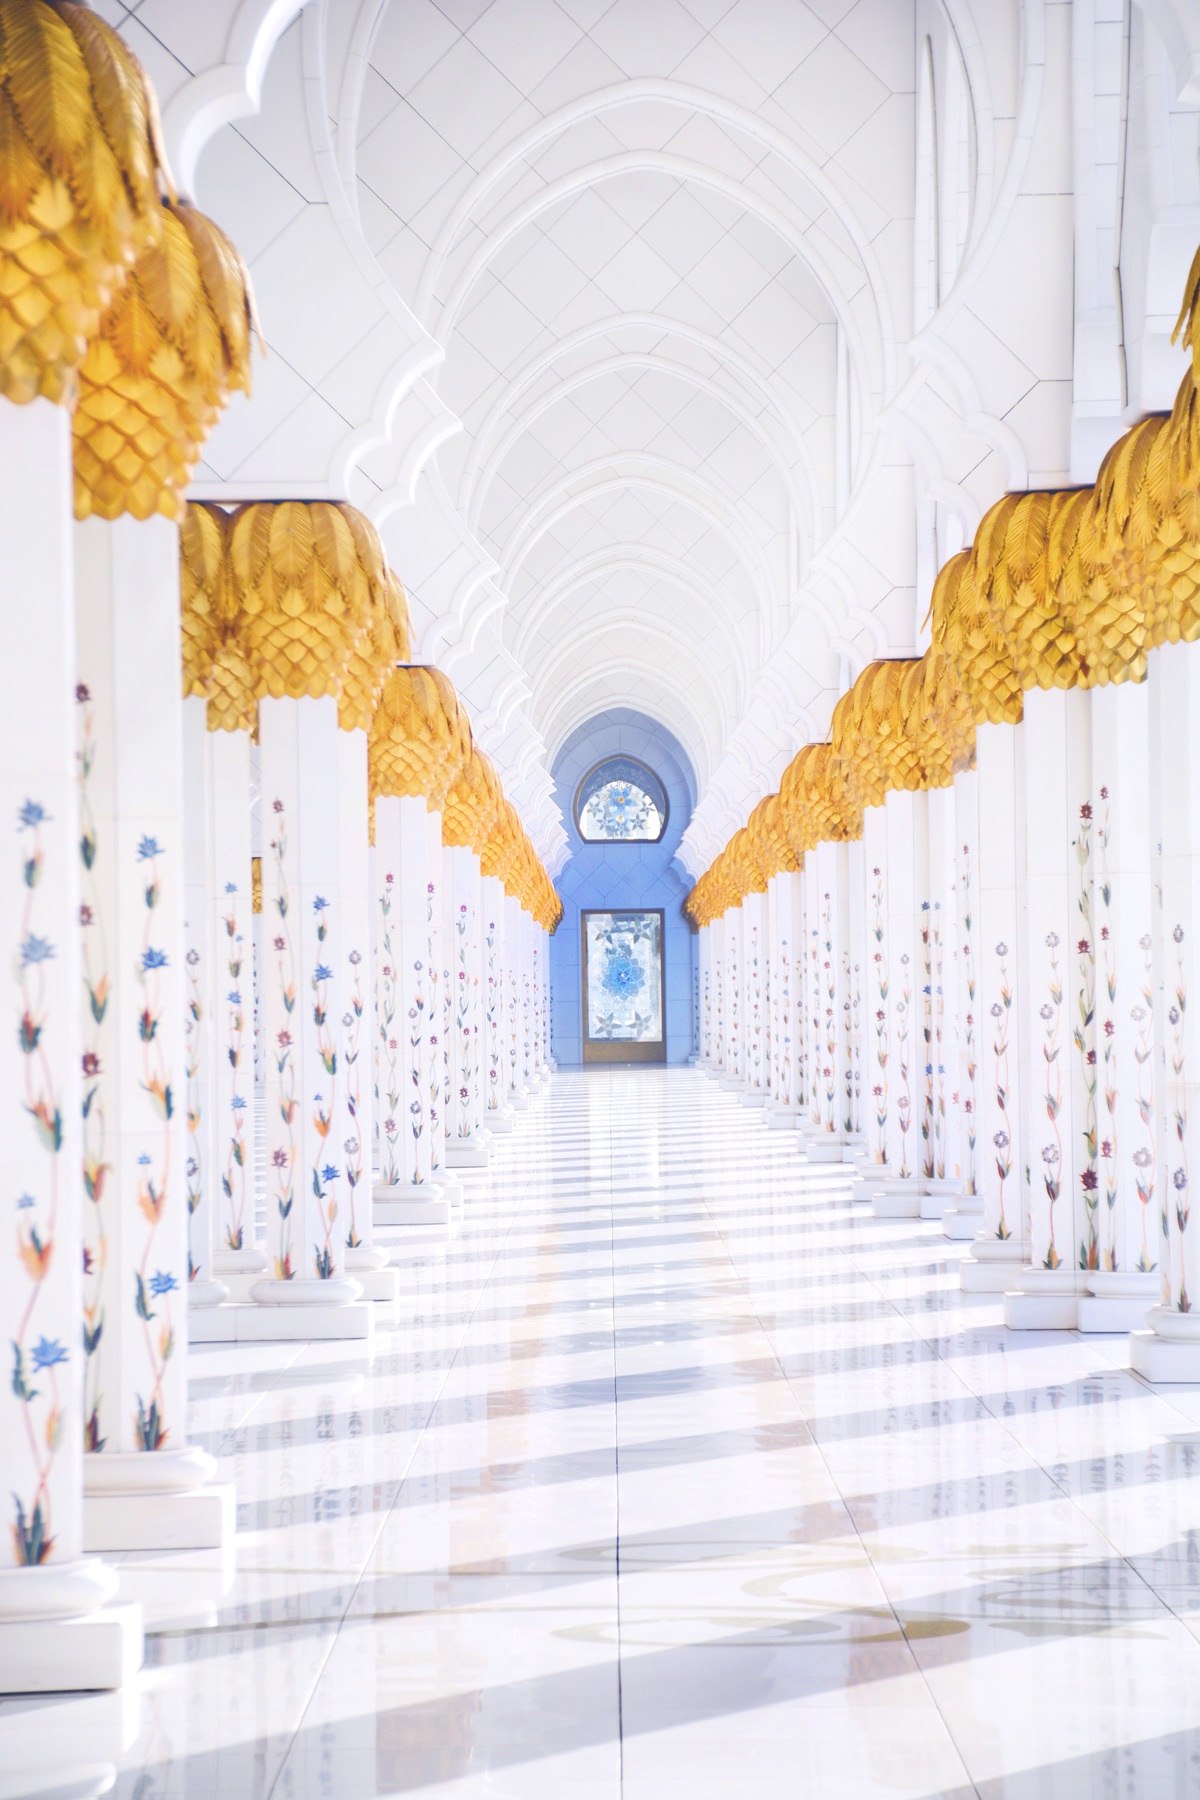 zayed mosque by perri rothenberg